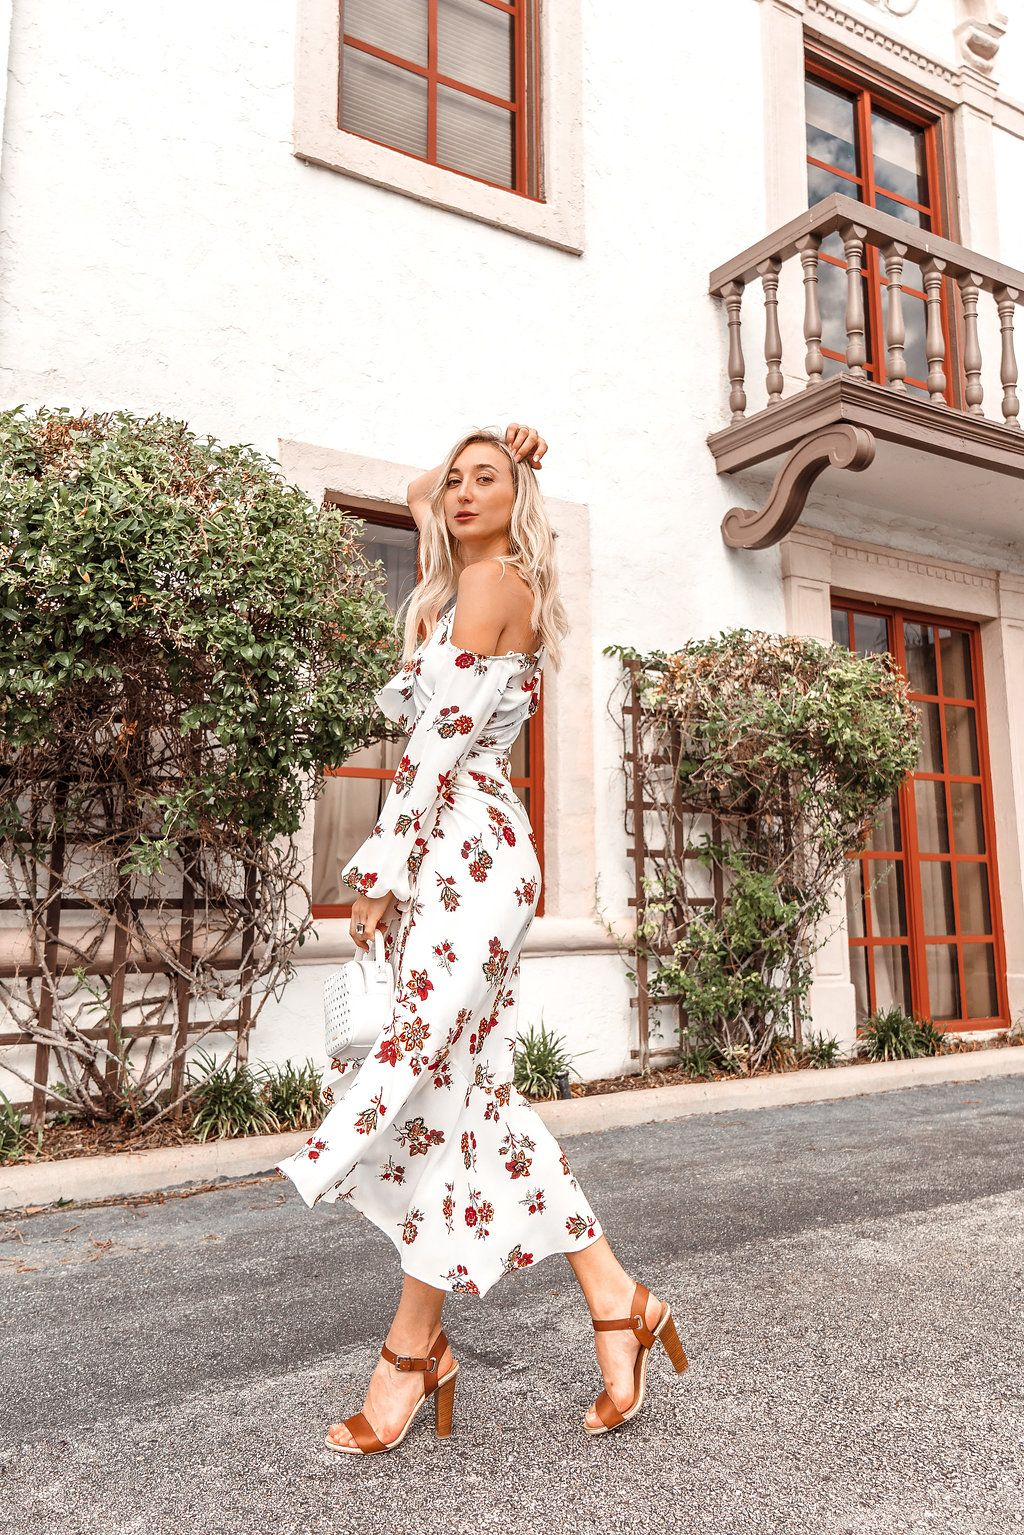 Show Stopping Floral Midi Dress Living In The Present Chiara Summer Fashion Outfits Fashion Dresses [ 1535 x 1024 Pixel ]